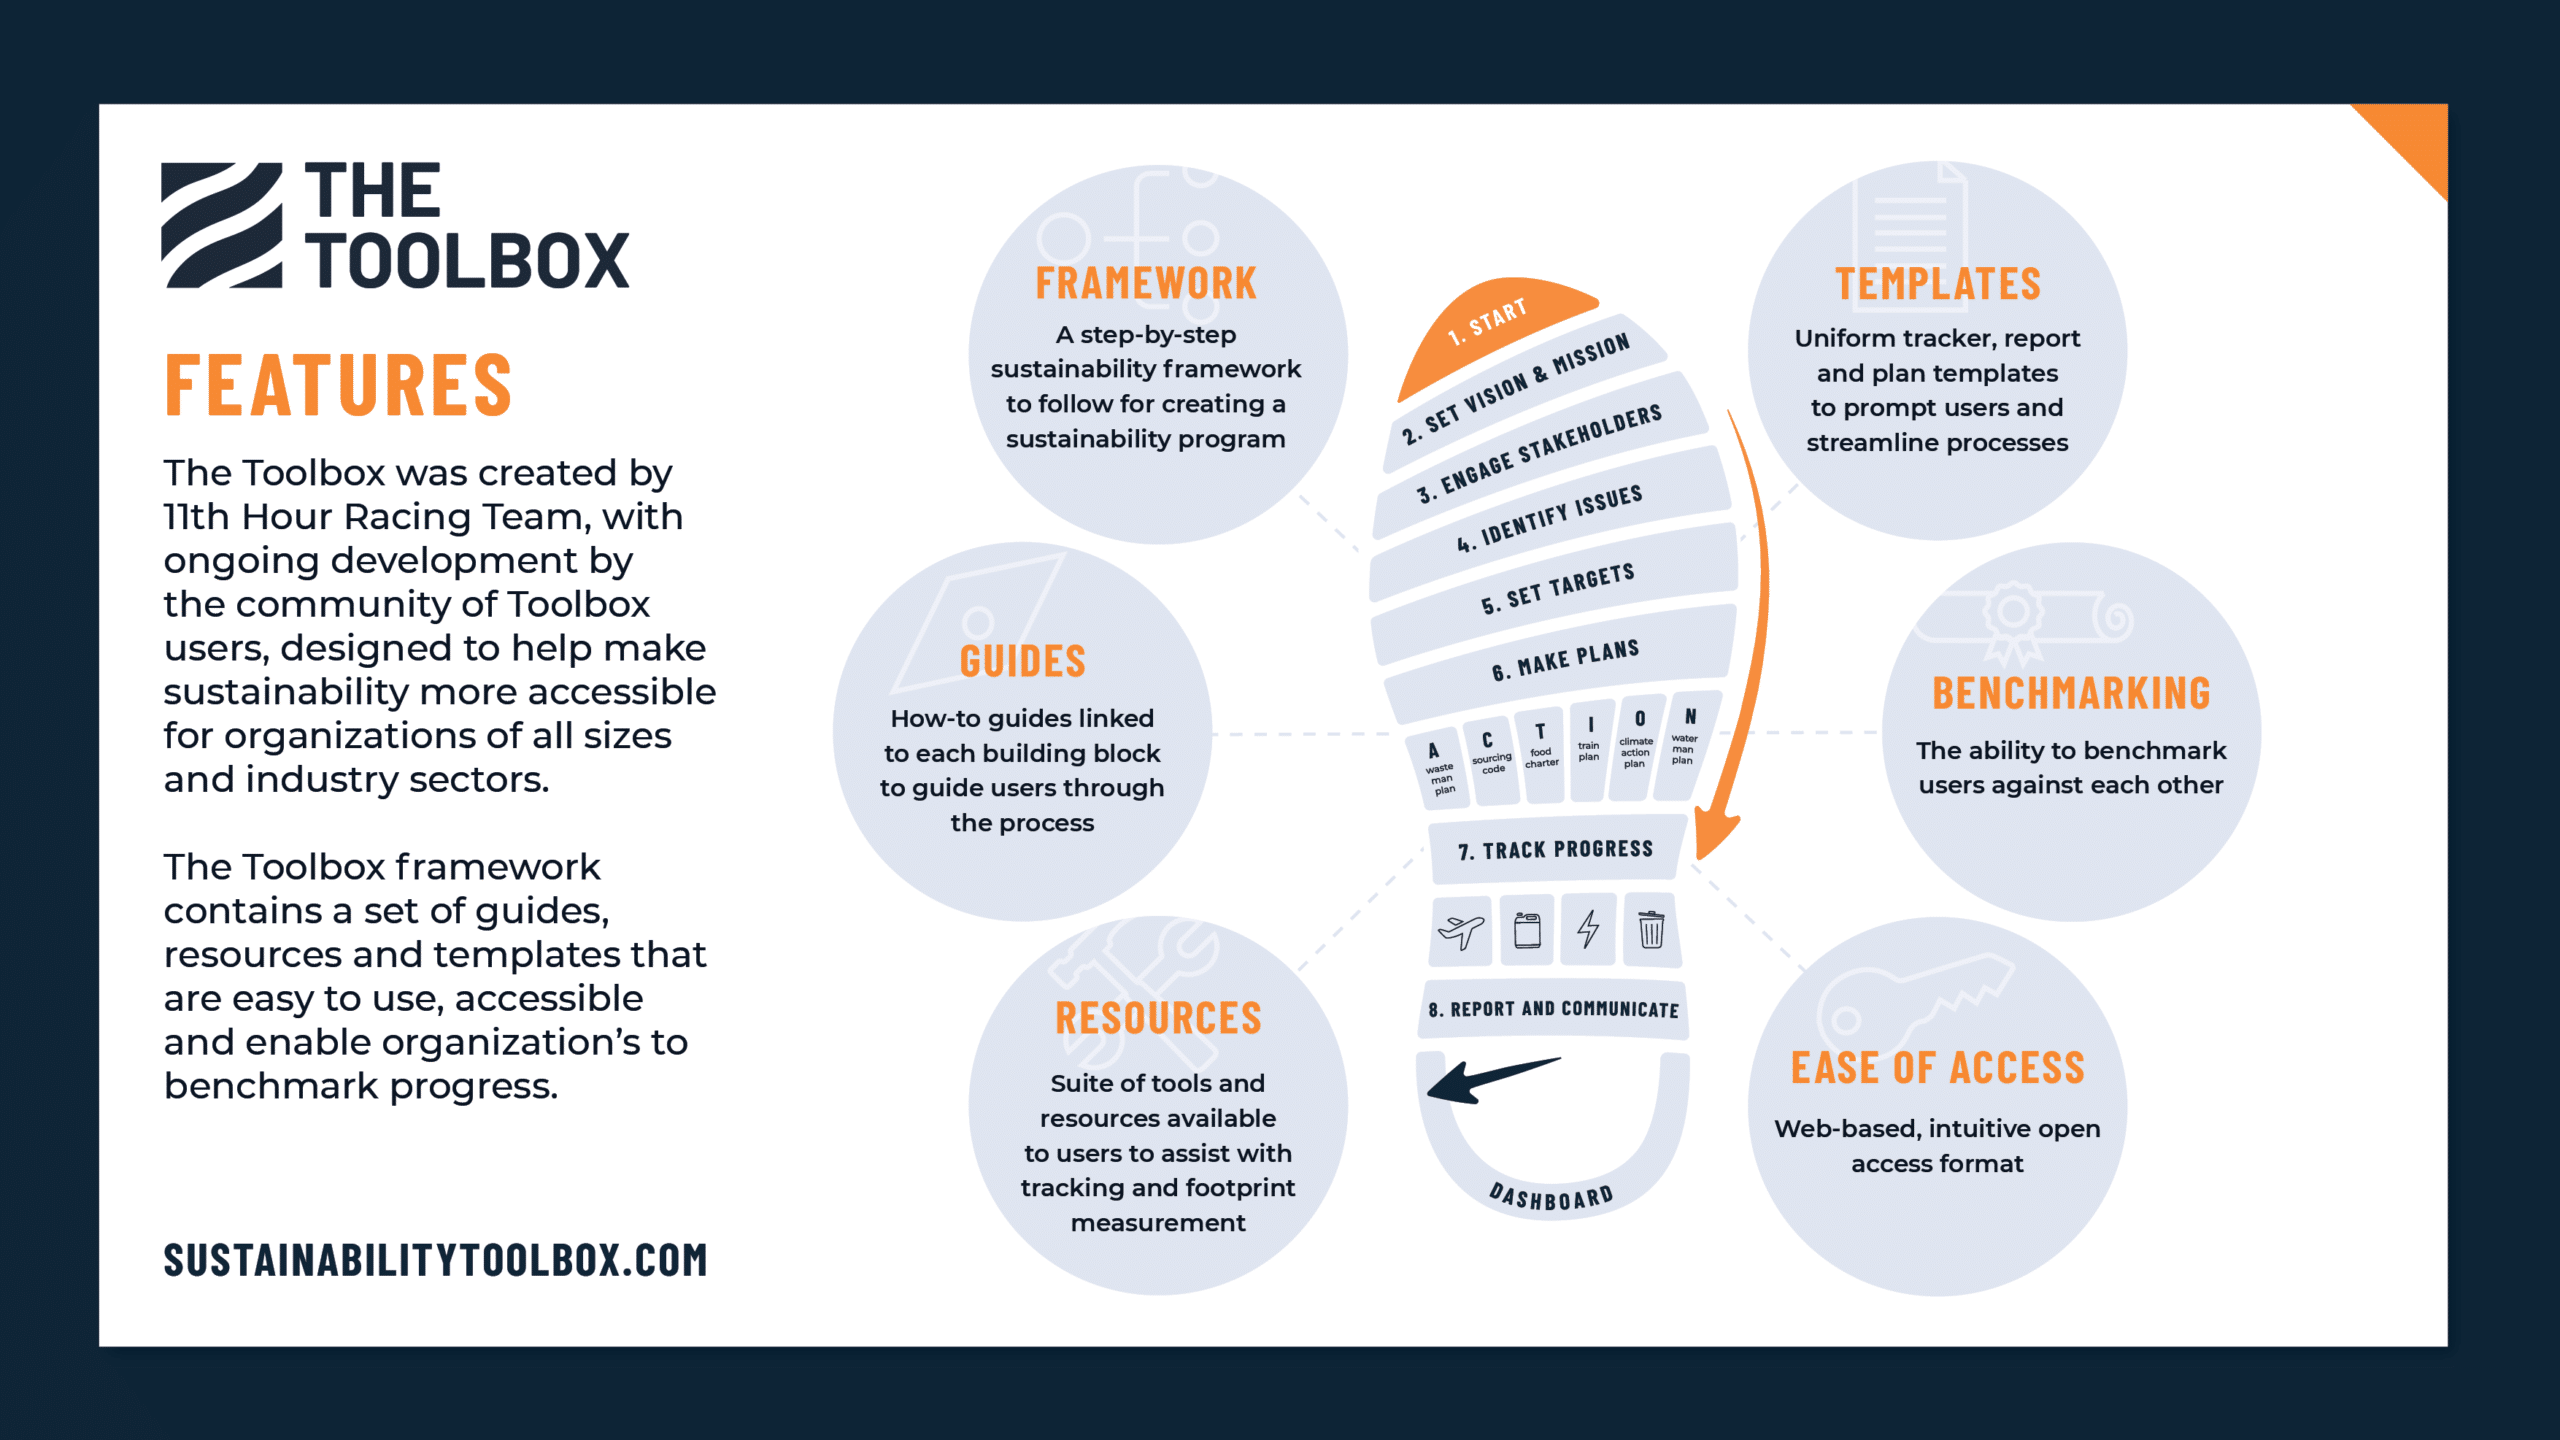 the toolbox how to start a sustainability porgram